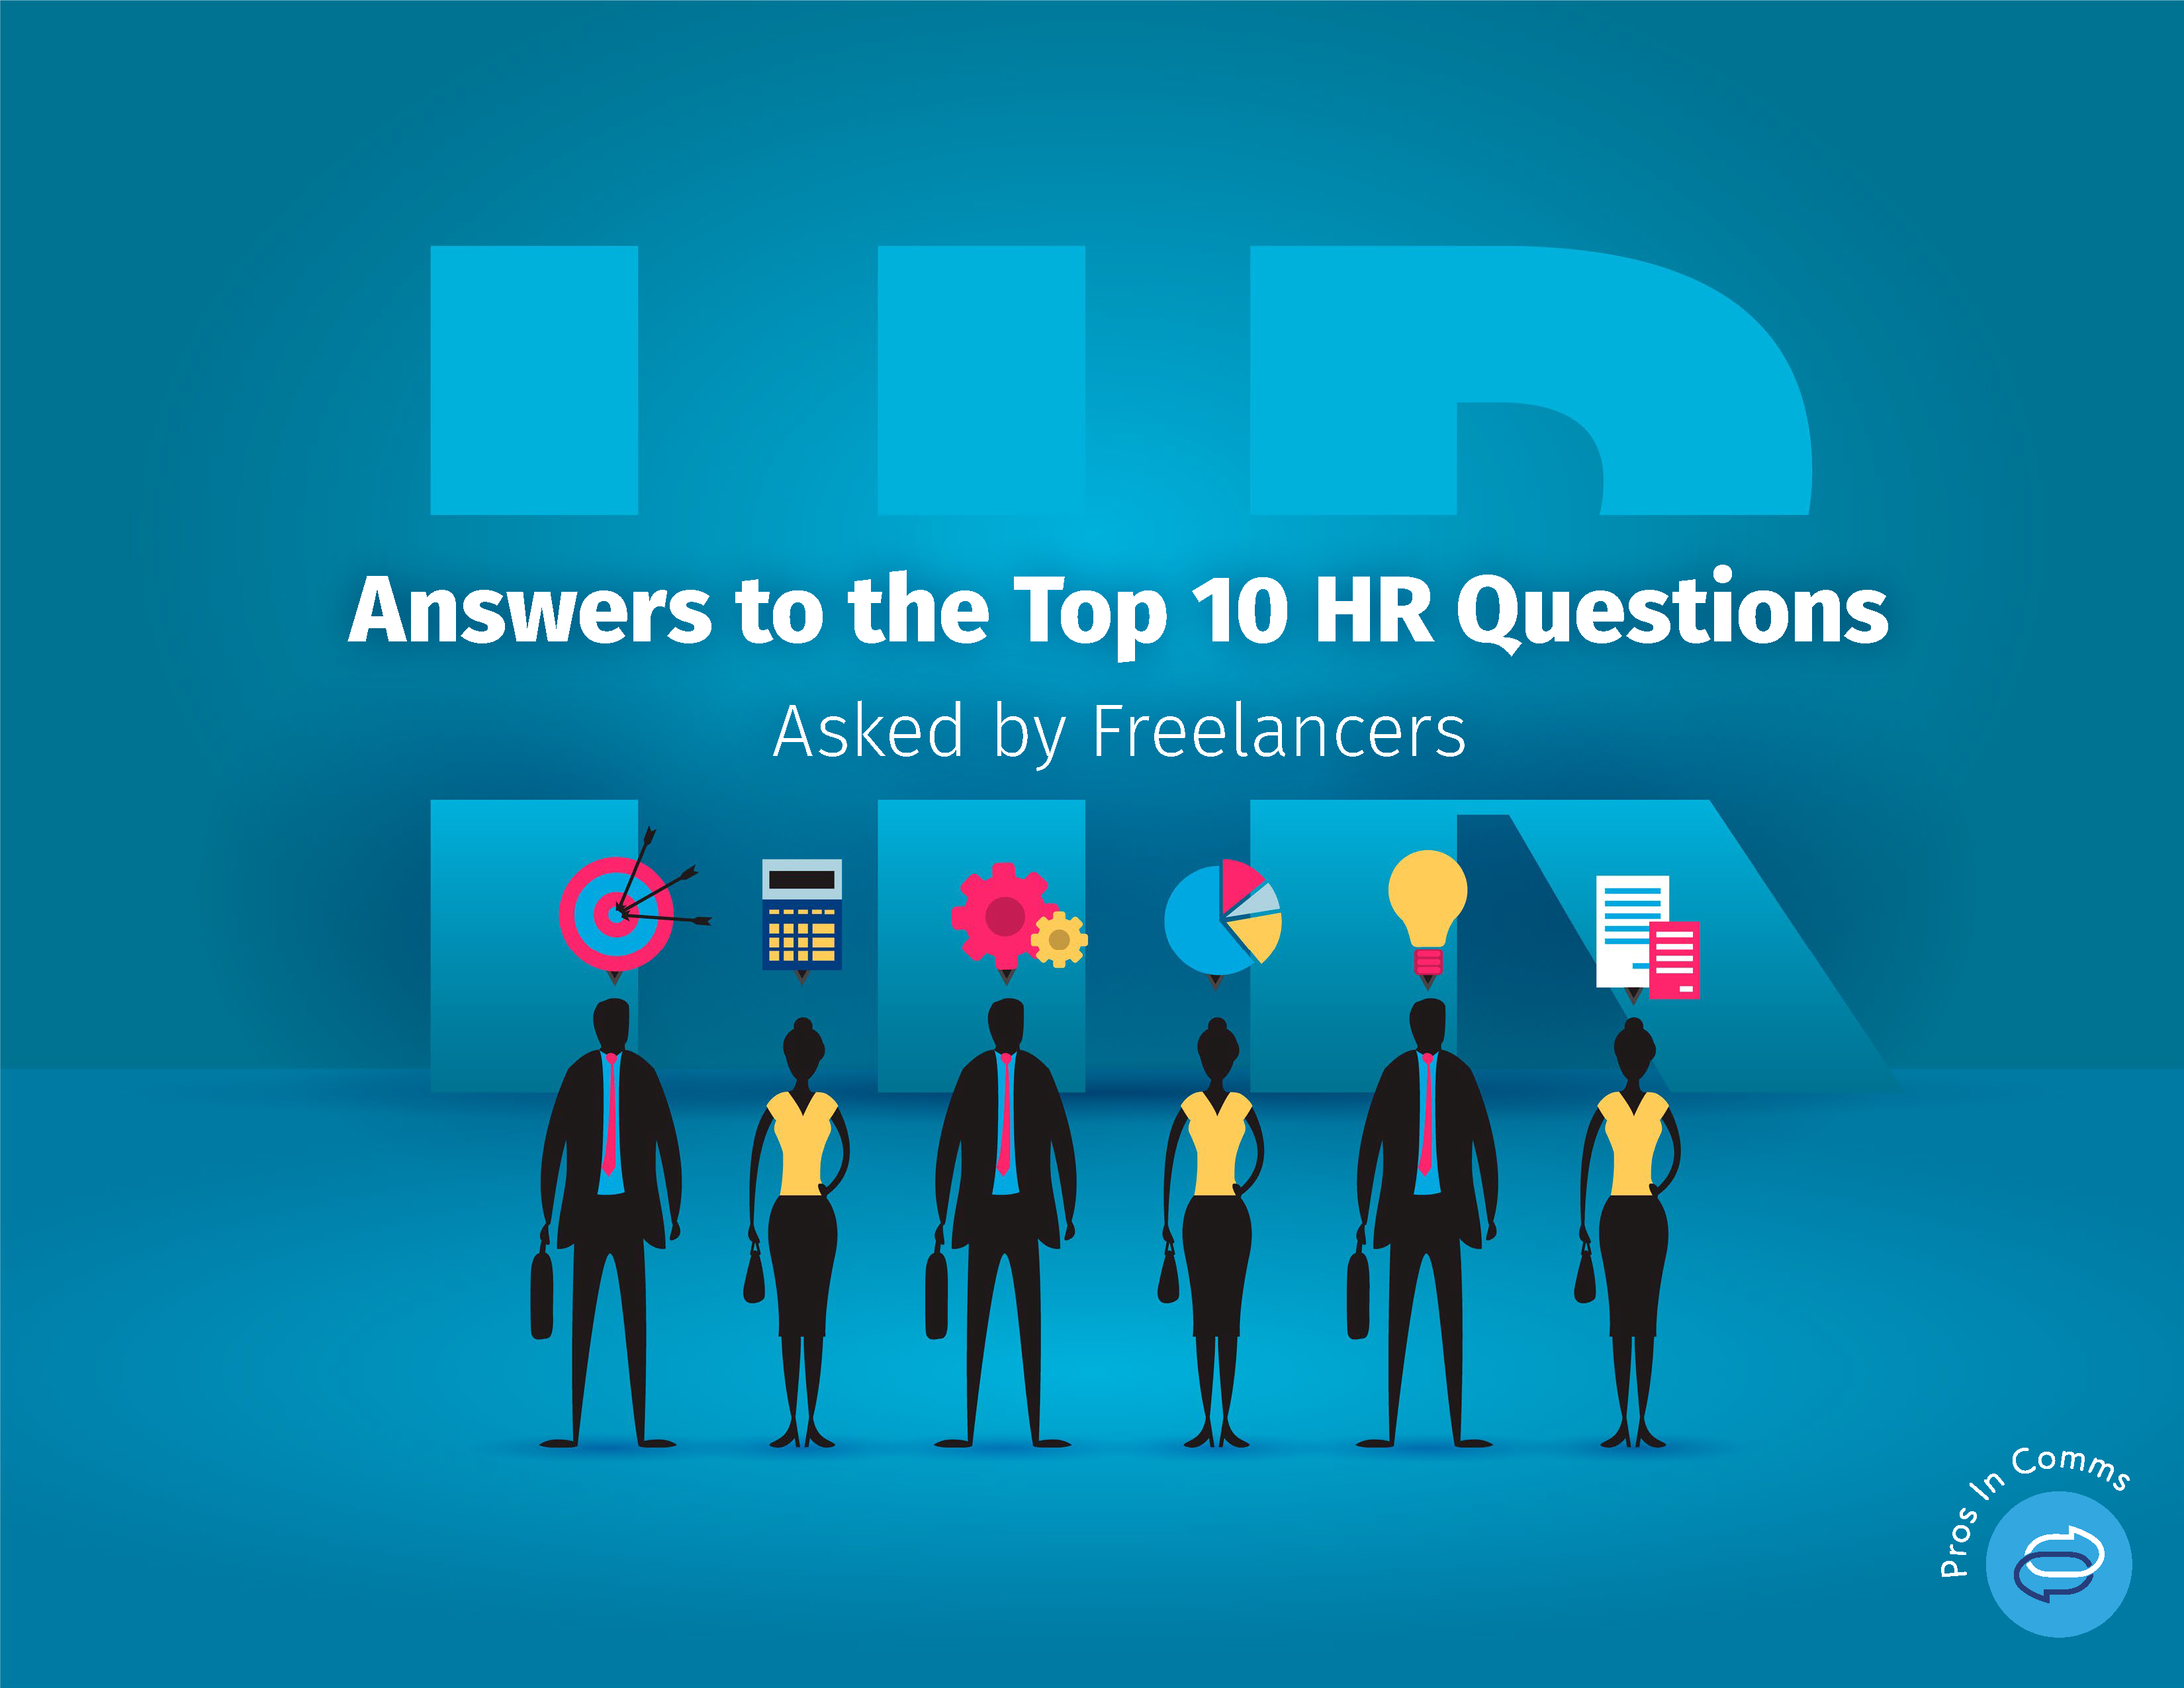 Top 10 HR Questions